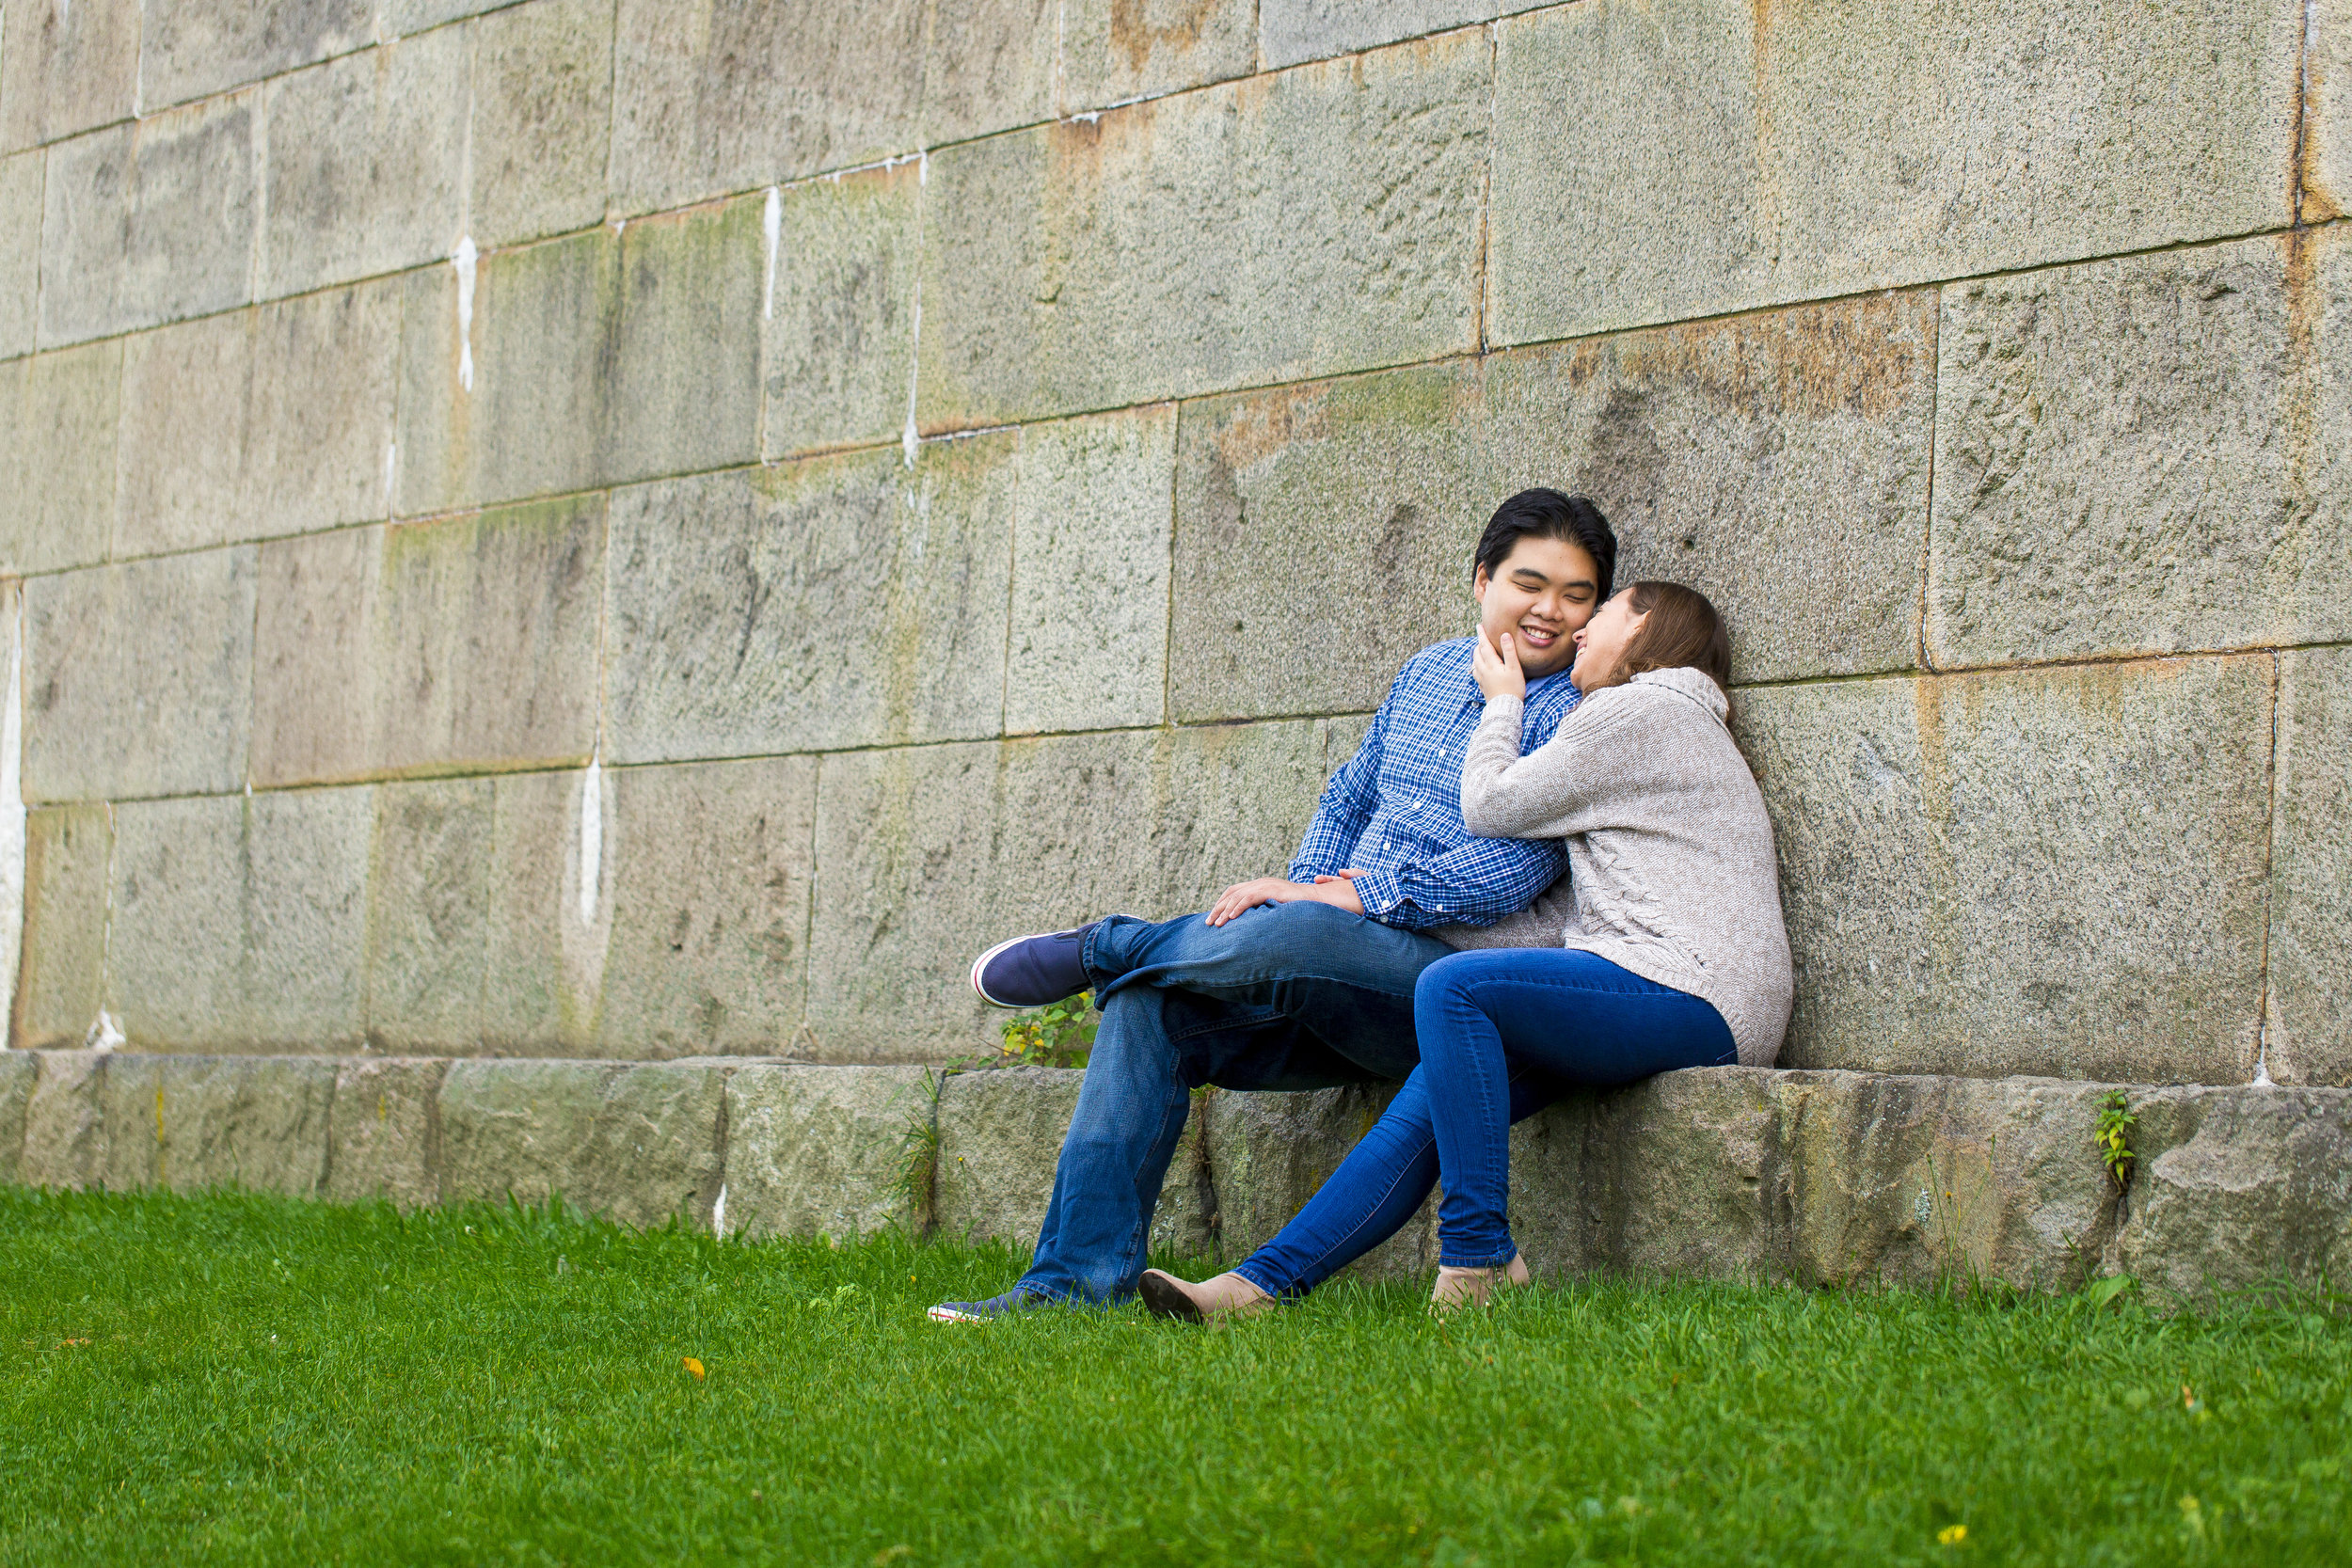 314A3755 Giovanni The Photographer Best Boston Wedding PhotographyErica and Richard's Engagement Session 10-29-17.jpg